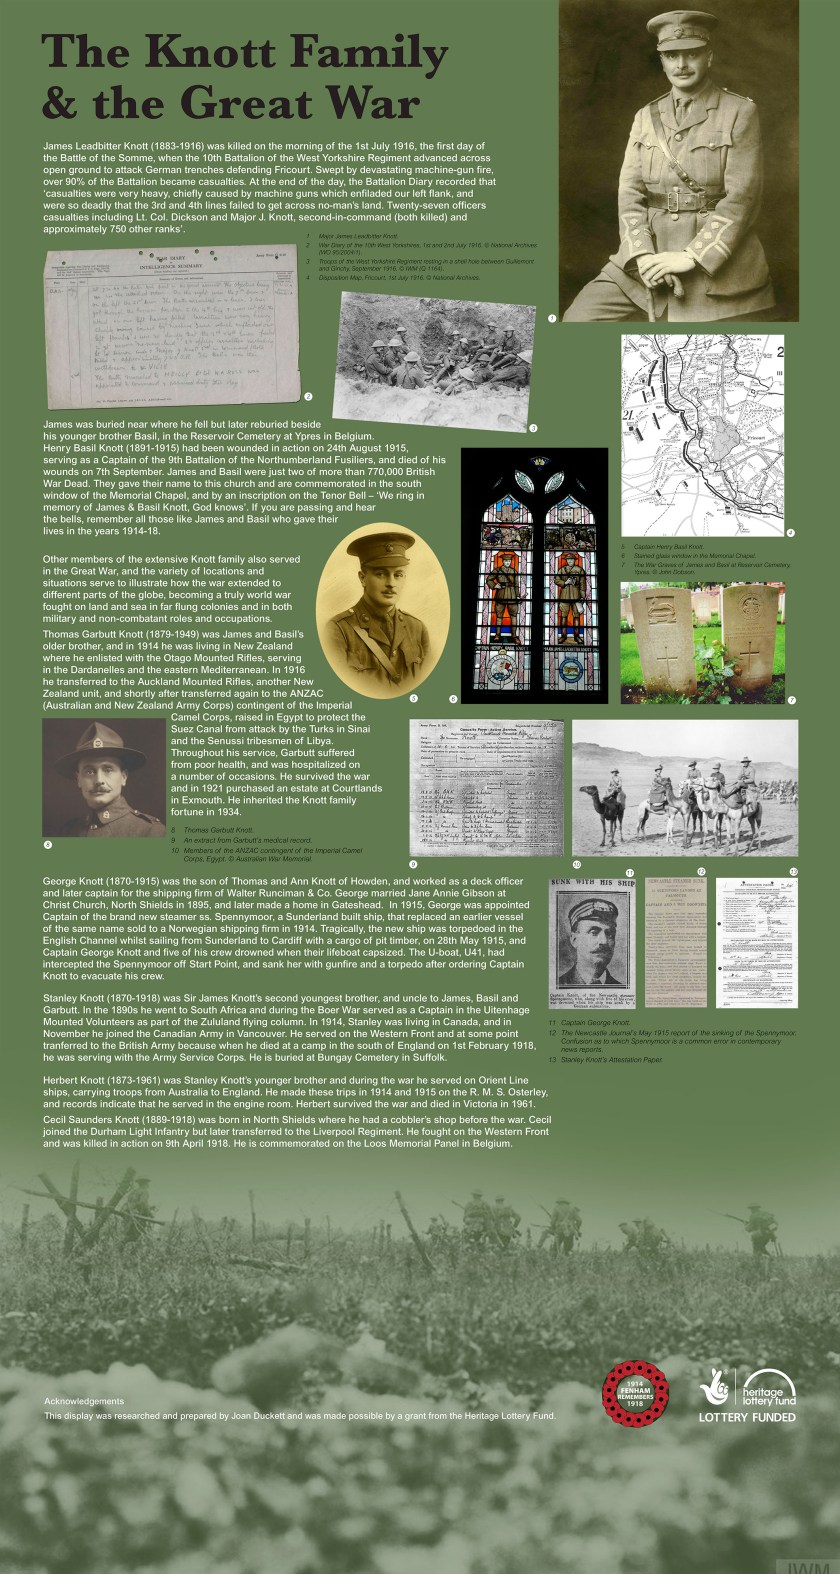 Knott Family and the Great War